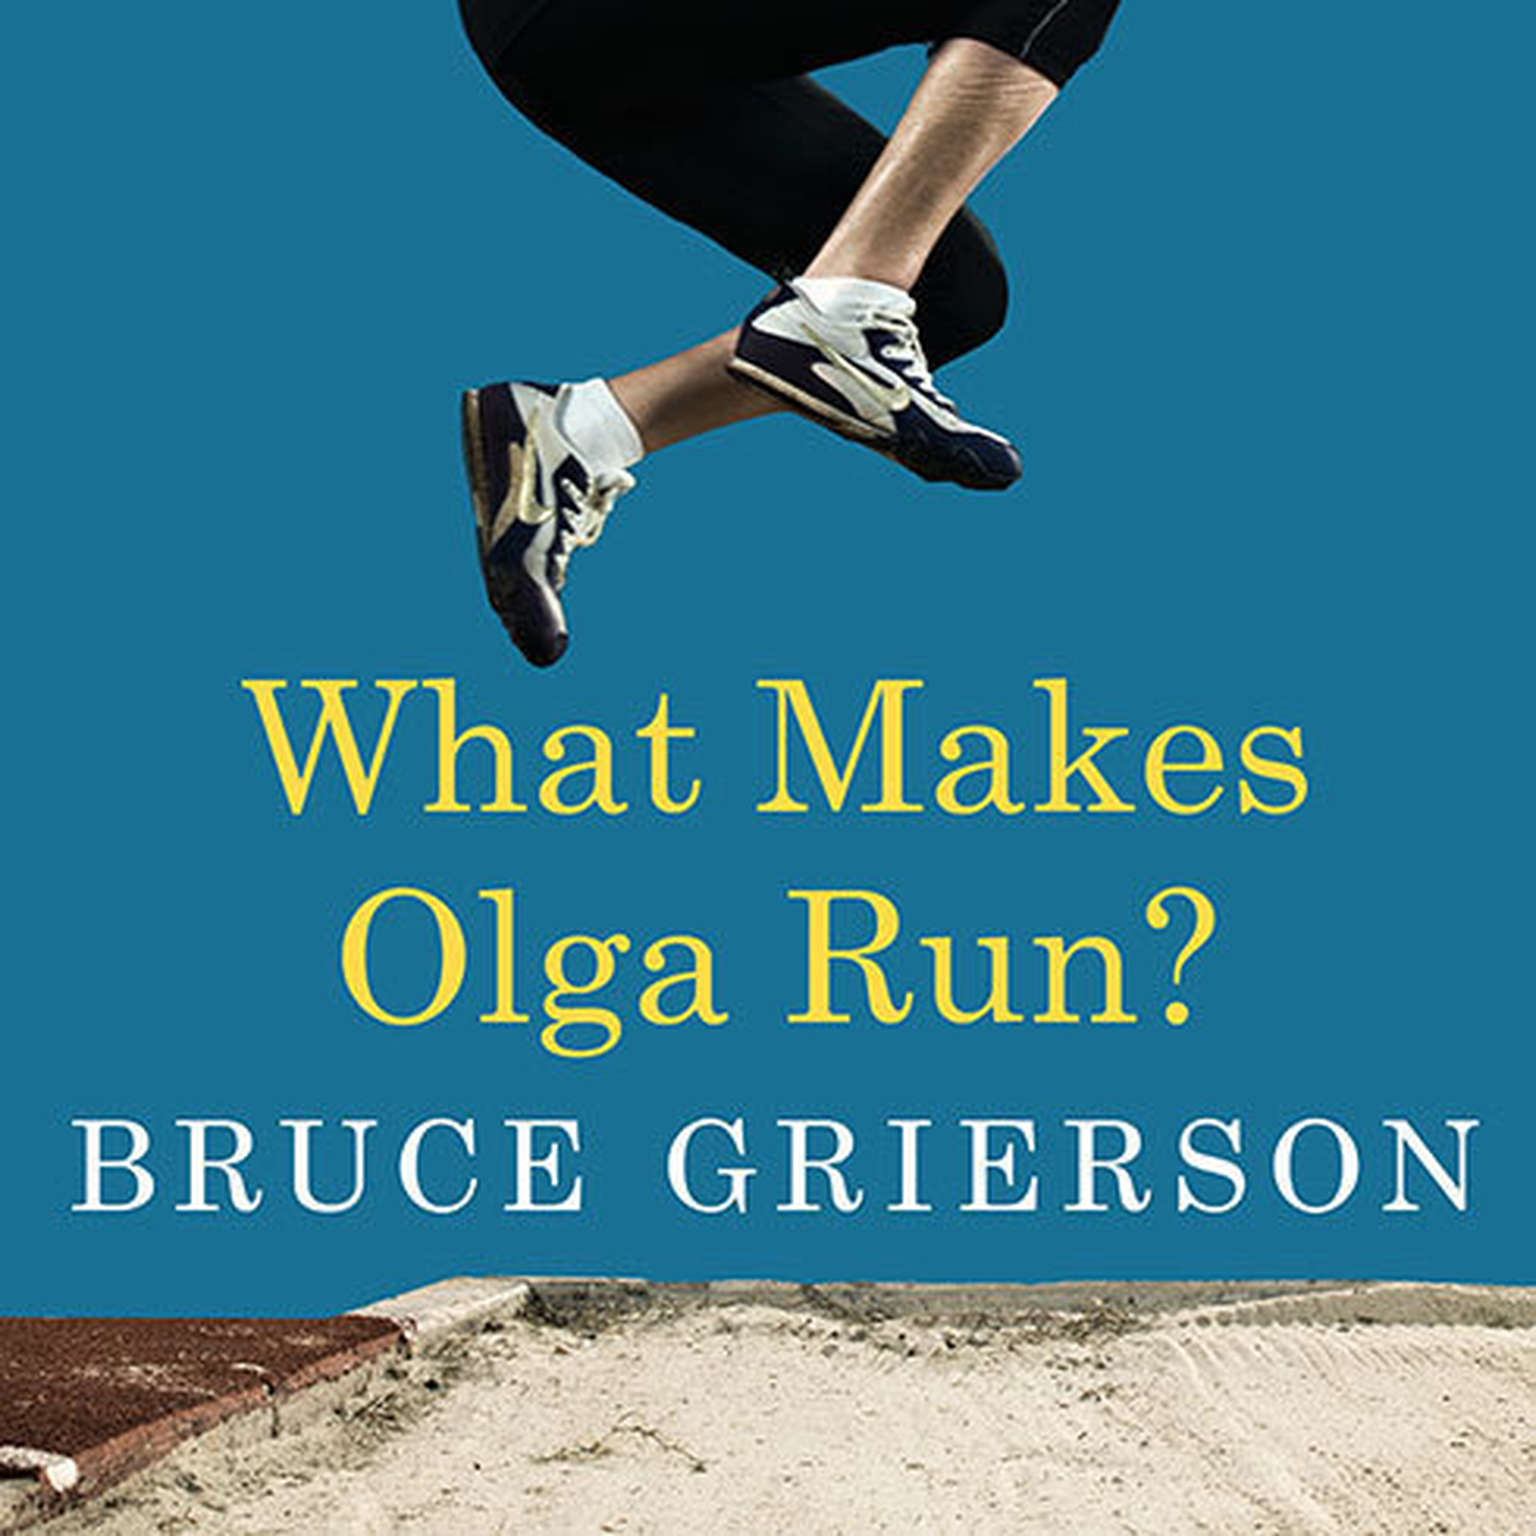 Printable What Makes Olga Run?: The Mystery of the 90-something Track Star and What She Can Teach Us About Living Longer, Happier Lives Audiobook Cover Art